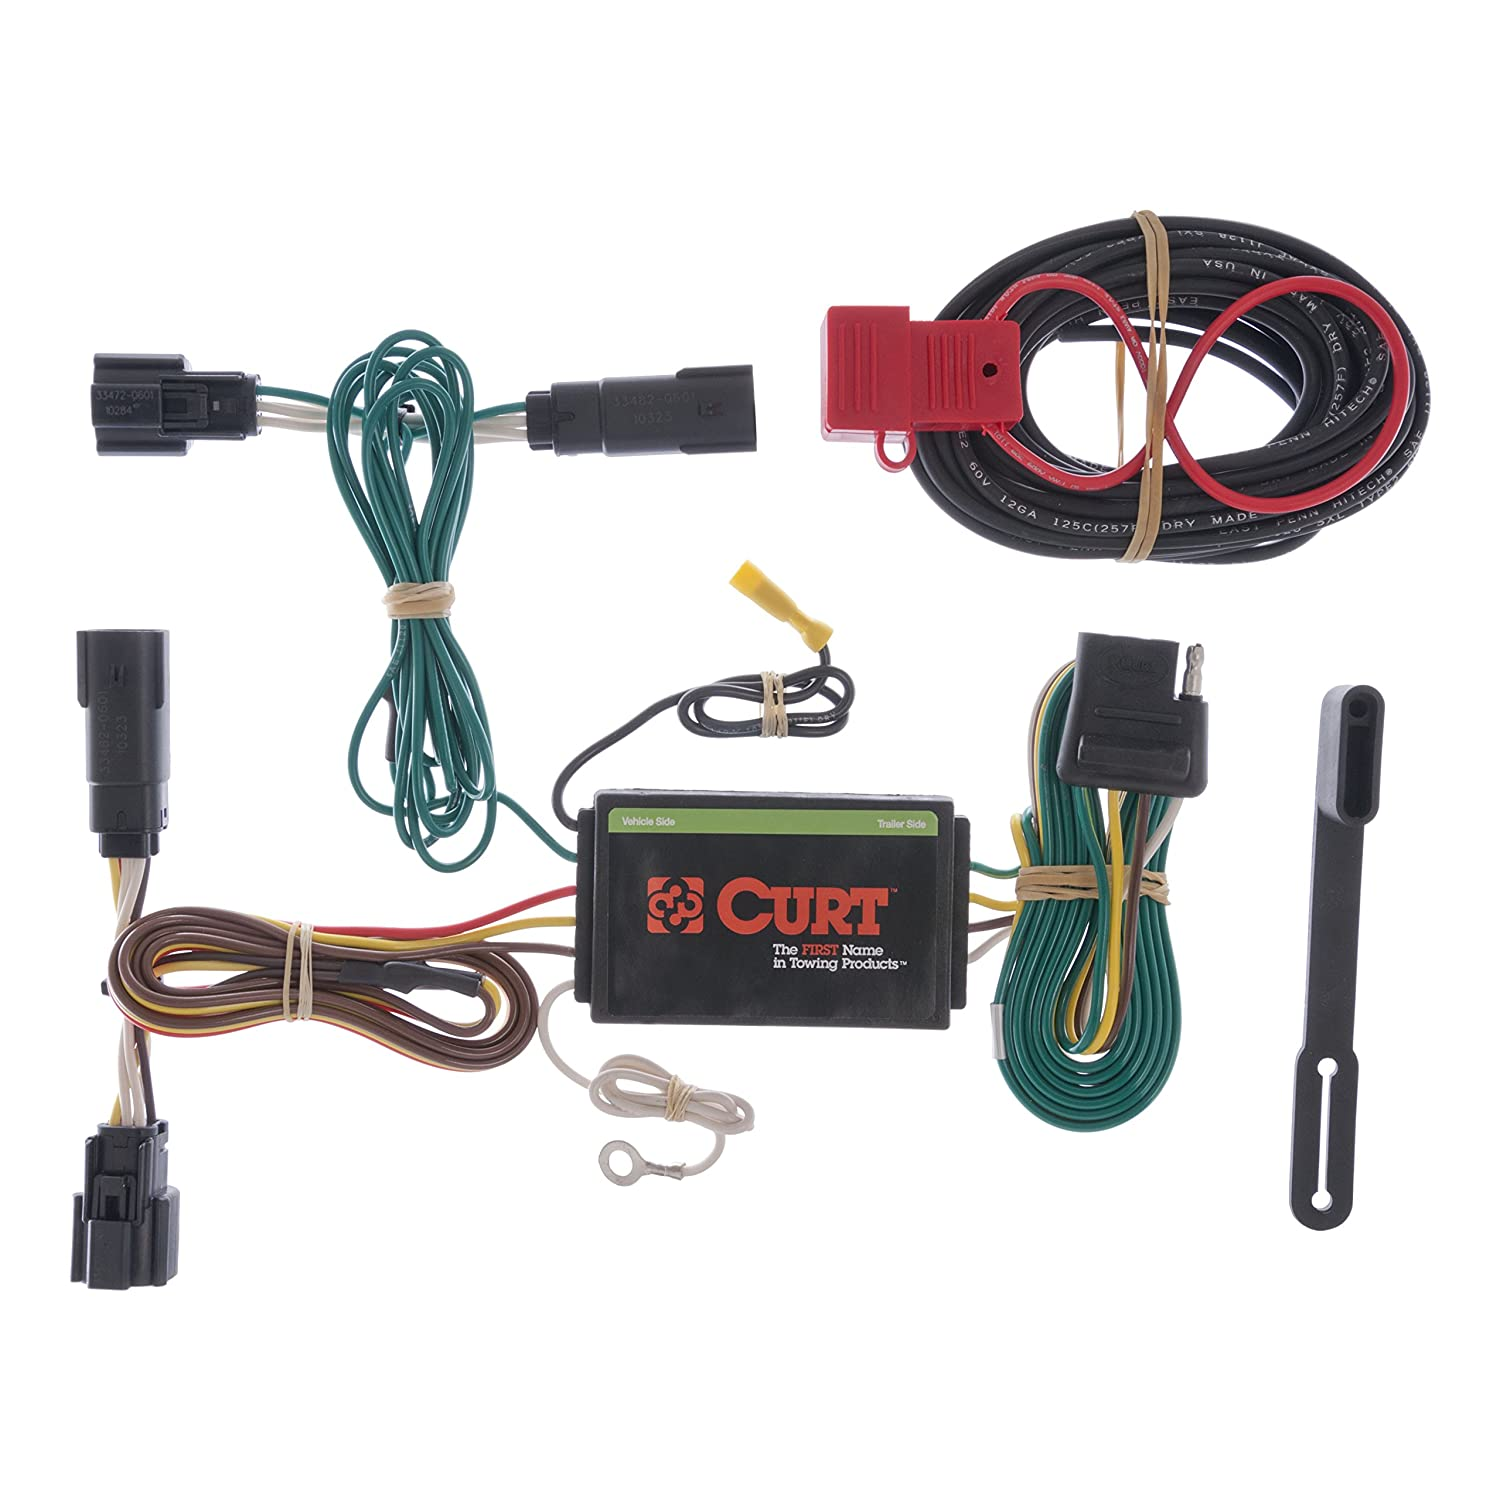 Amazon.com: Curt Manufacturing CURT 56120 Custom Wiring Harness: Automotive